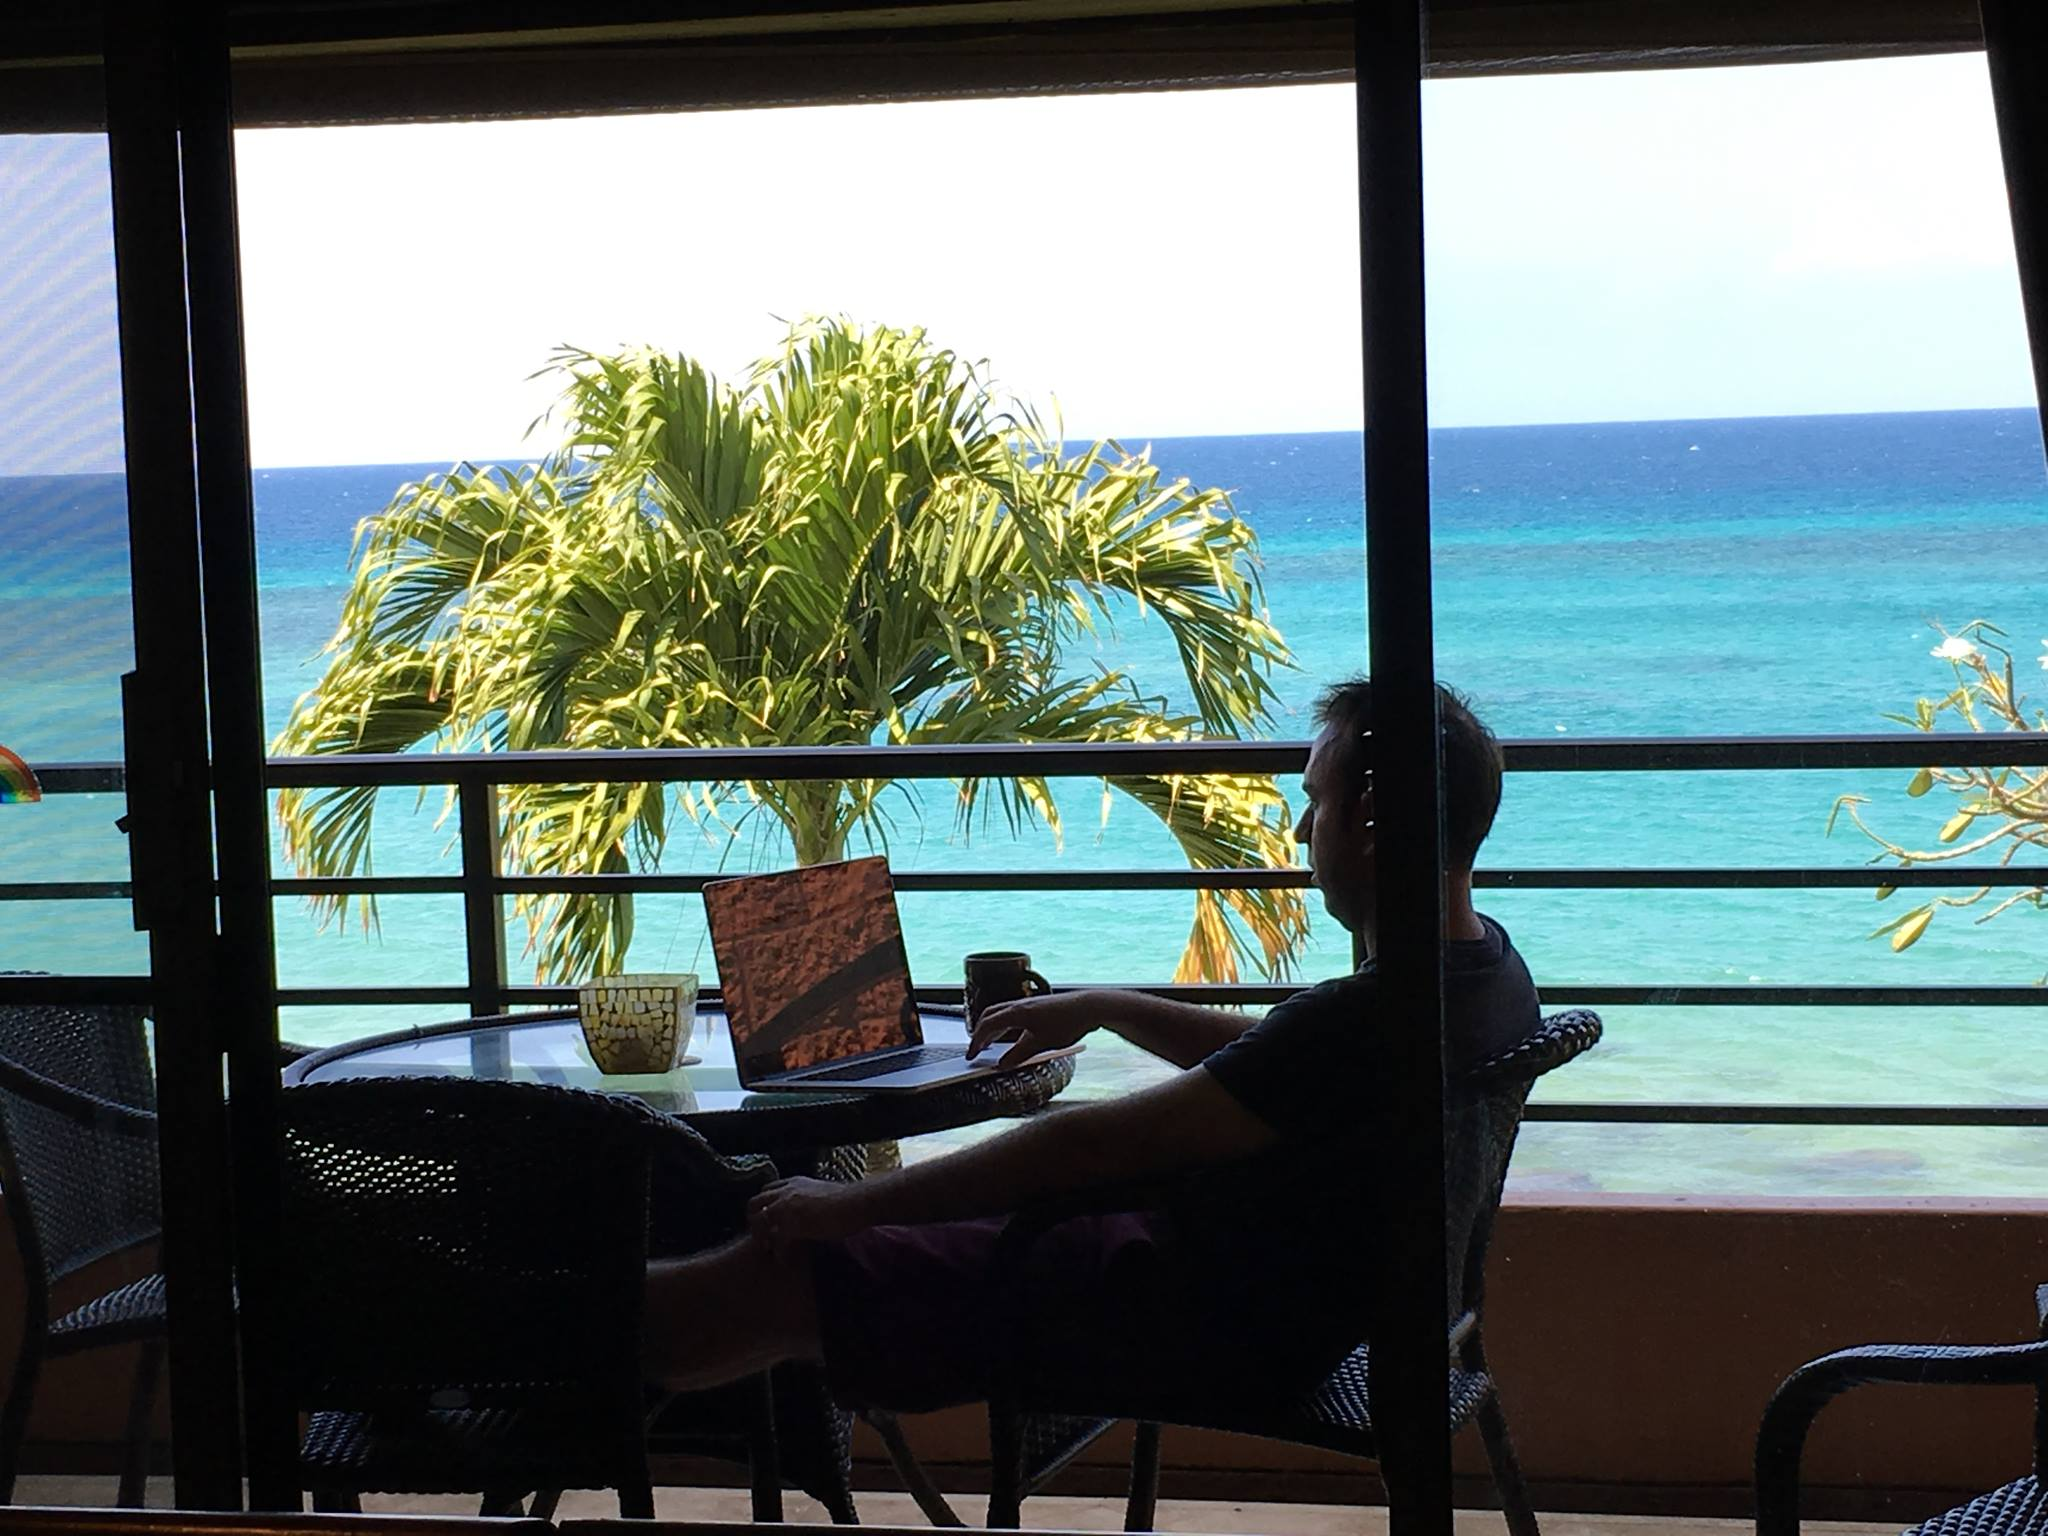 How To Ease Into Life As A Digital Nomad - Or How To Not Jump In The Deep End